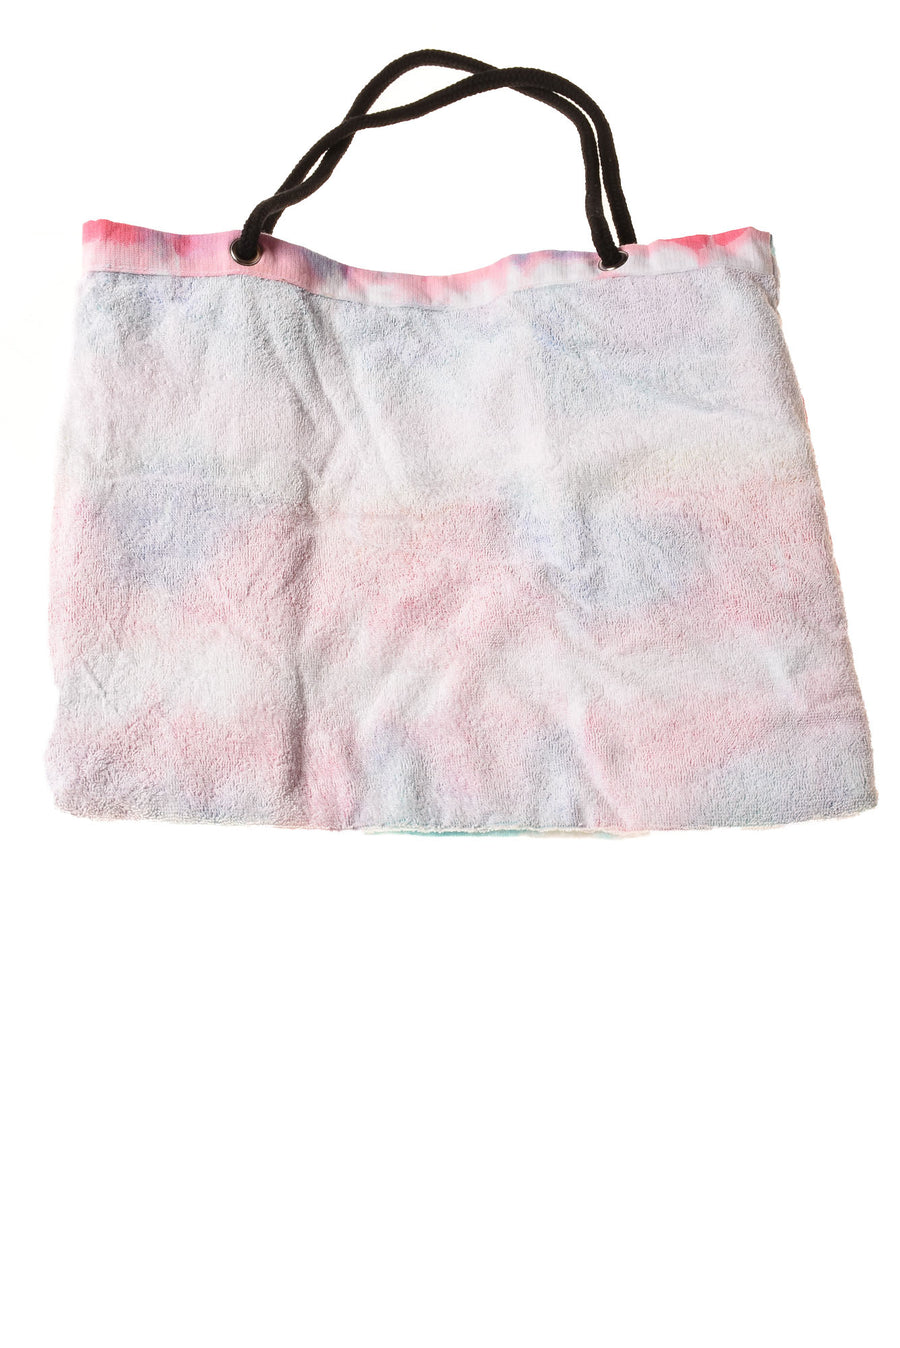 Women's Handbag By Pink By Victoria's Secret